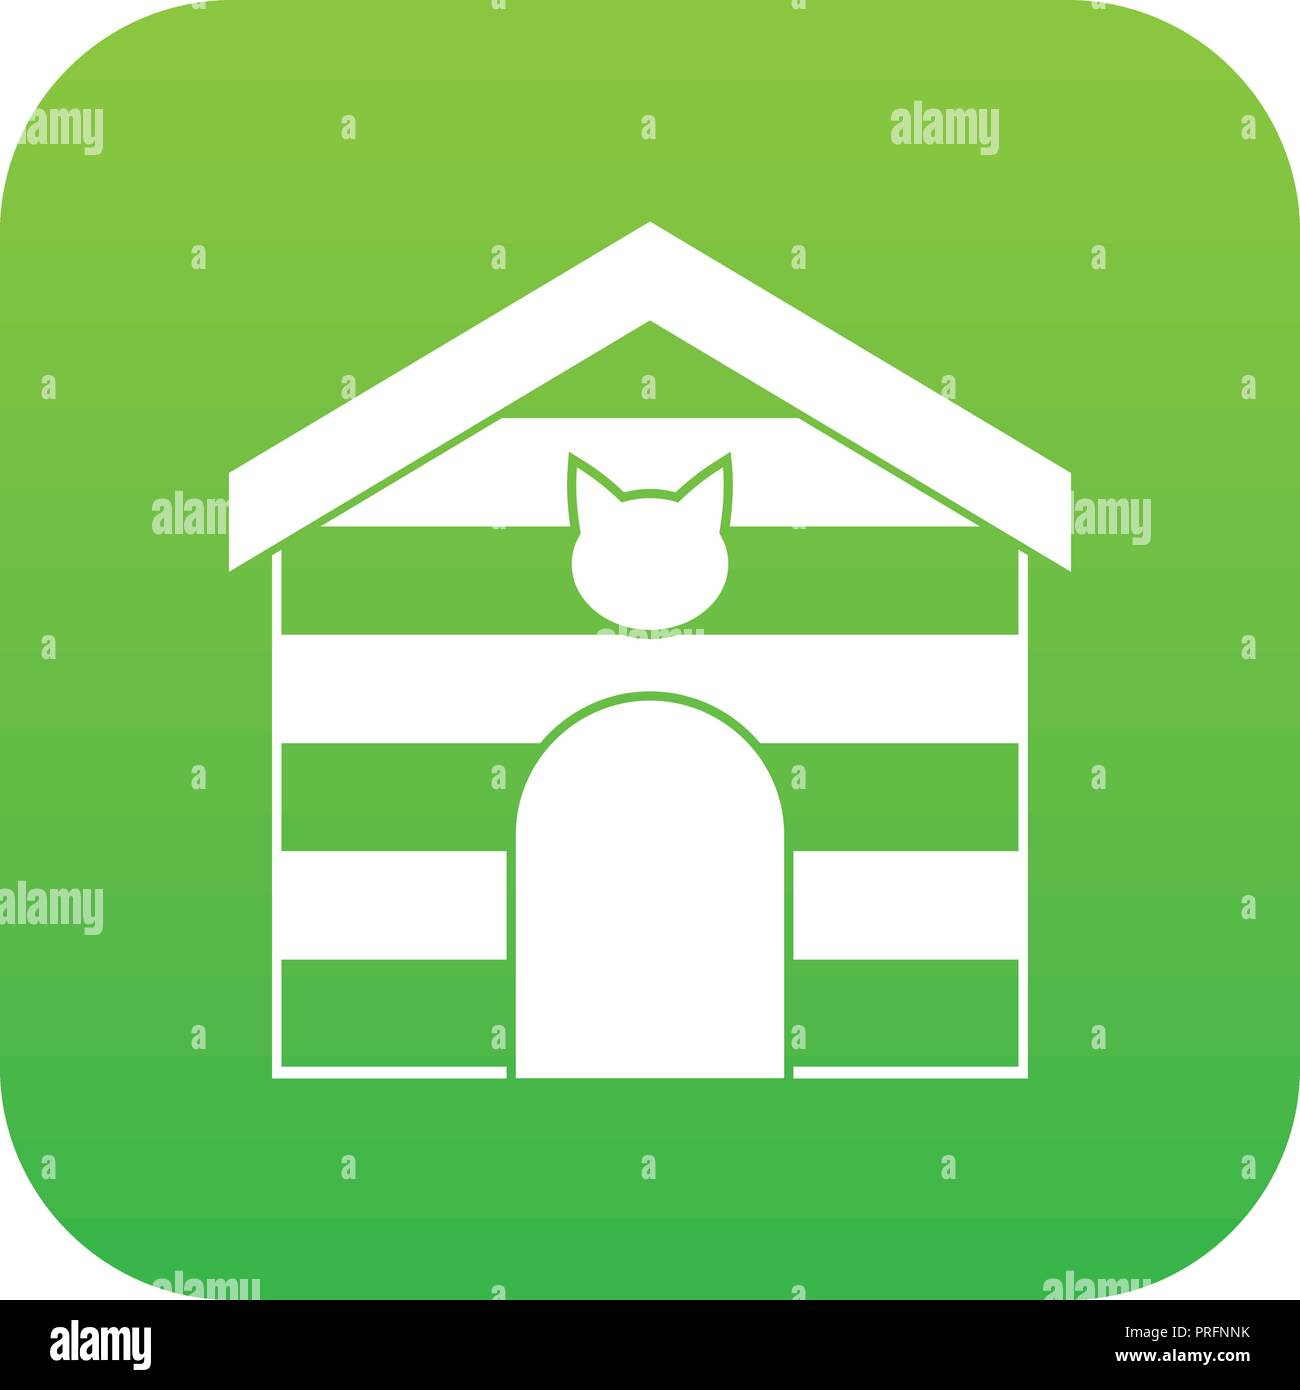 Cat House Icon Digital Green Stock Vector Art Illustration. Cat House Icon Digital Green. Wiring. Diagram Of A Cat House At Scoala.co